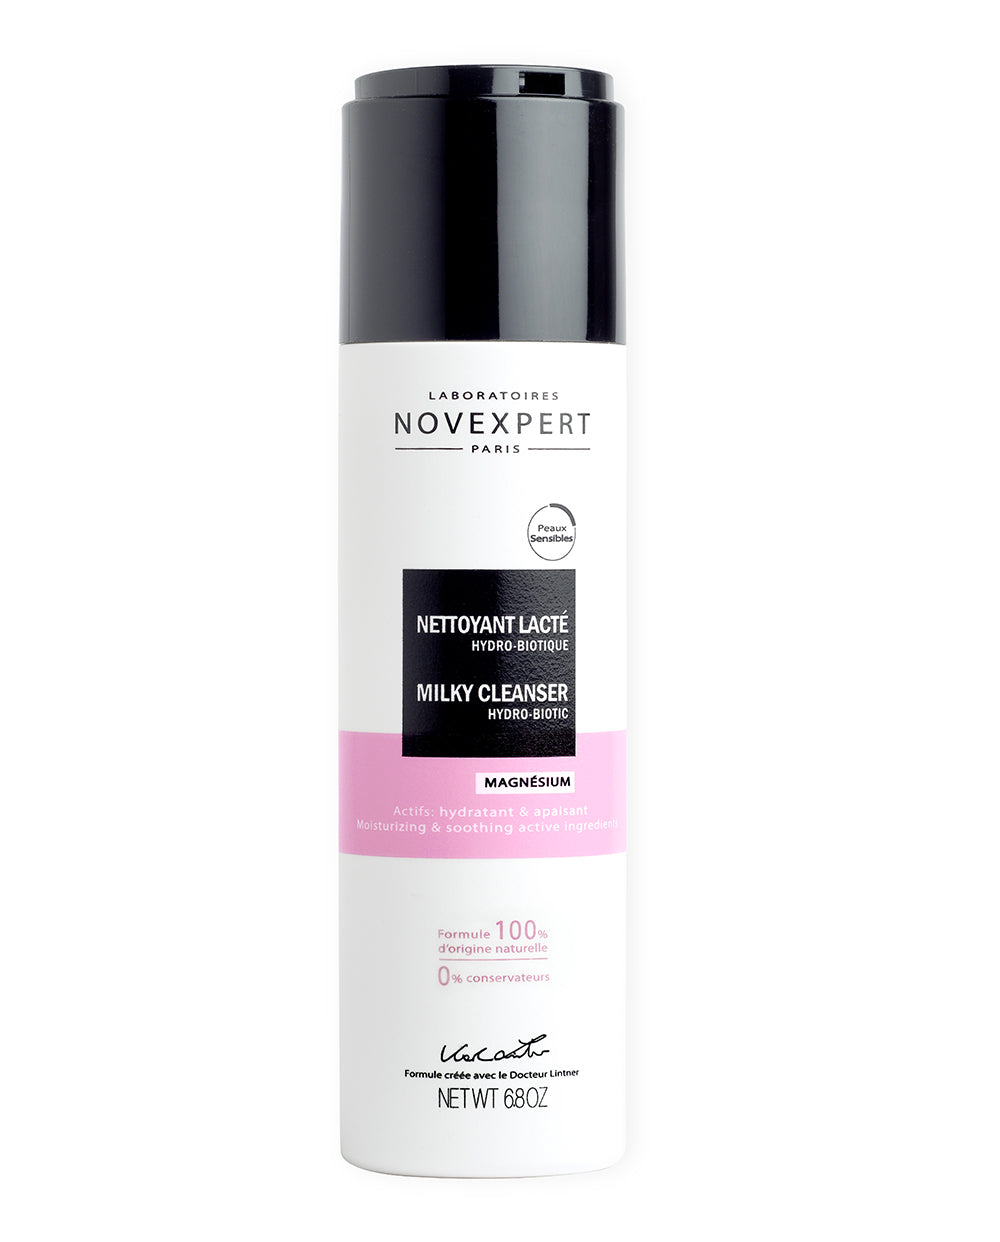 Novexpert Milky Cleanser Hydro-Biotic – 200ml